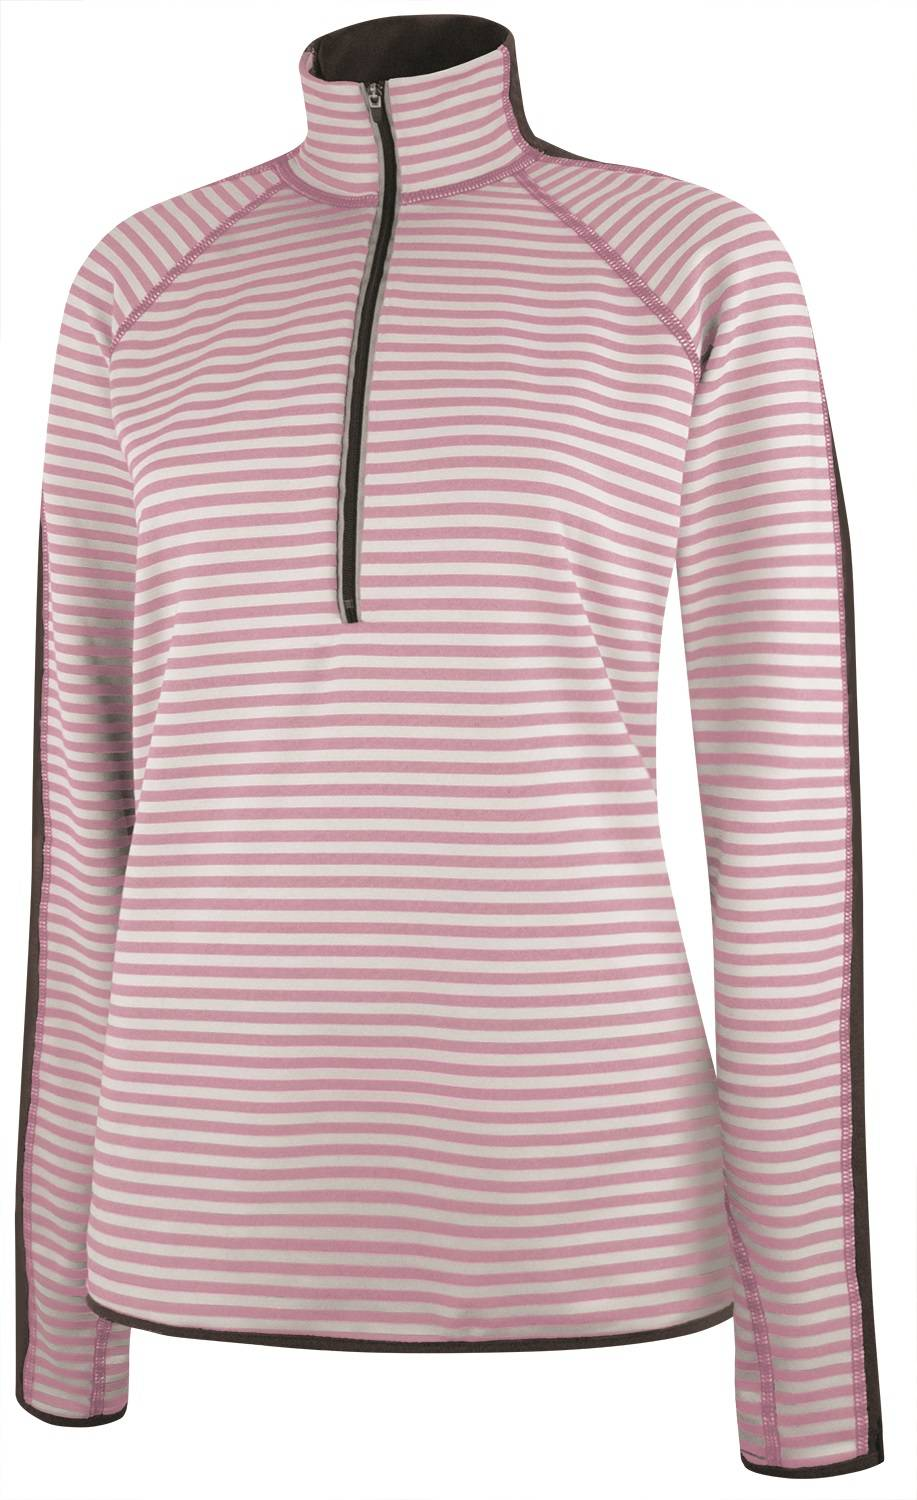 Irideon Ladies' Himalayer 1/2 Zip